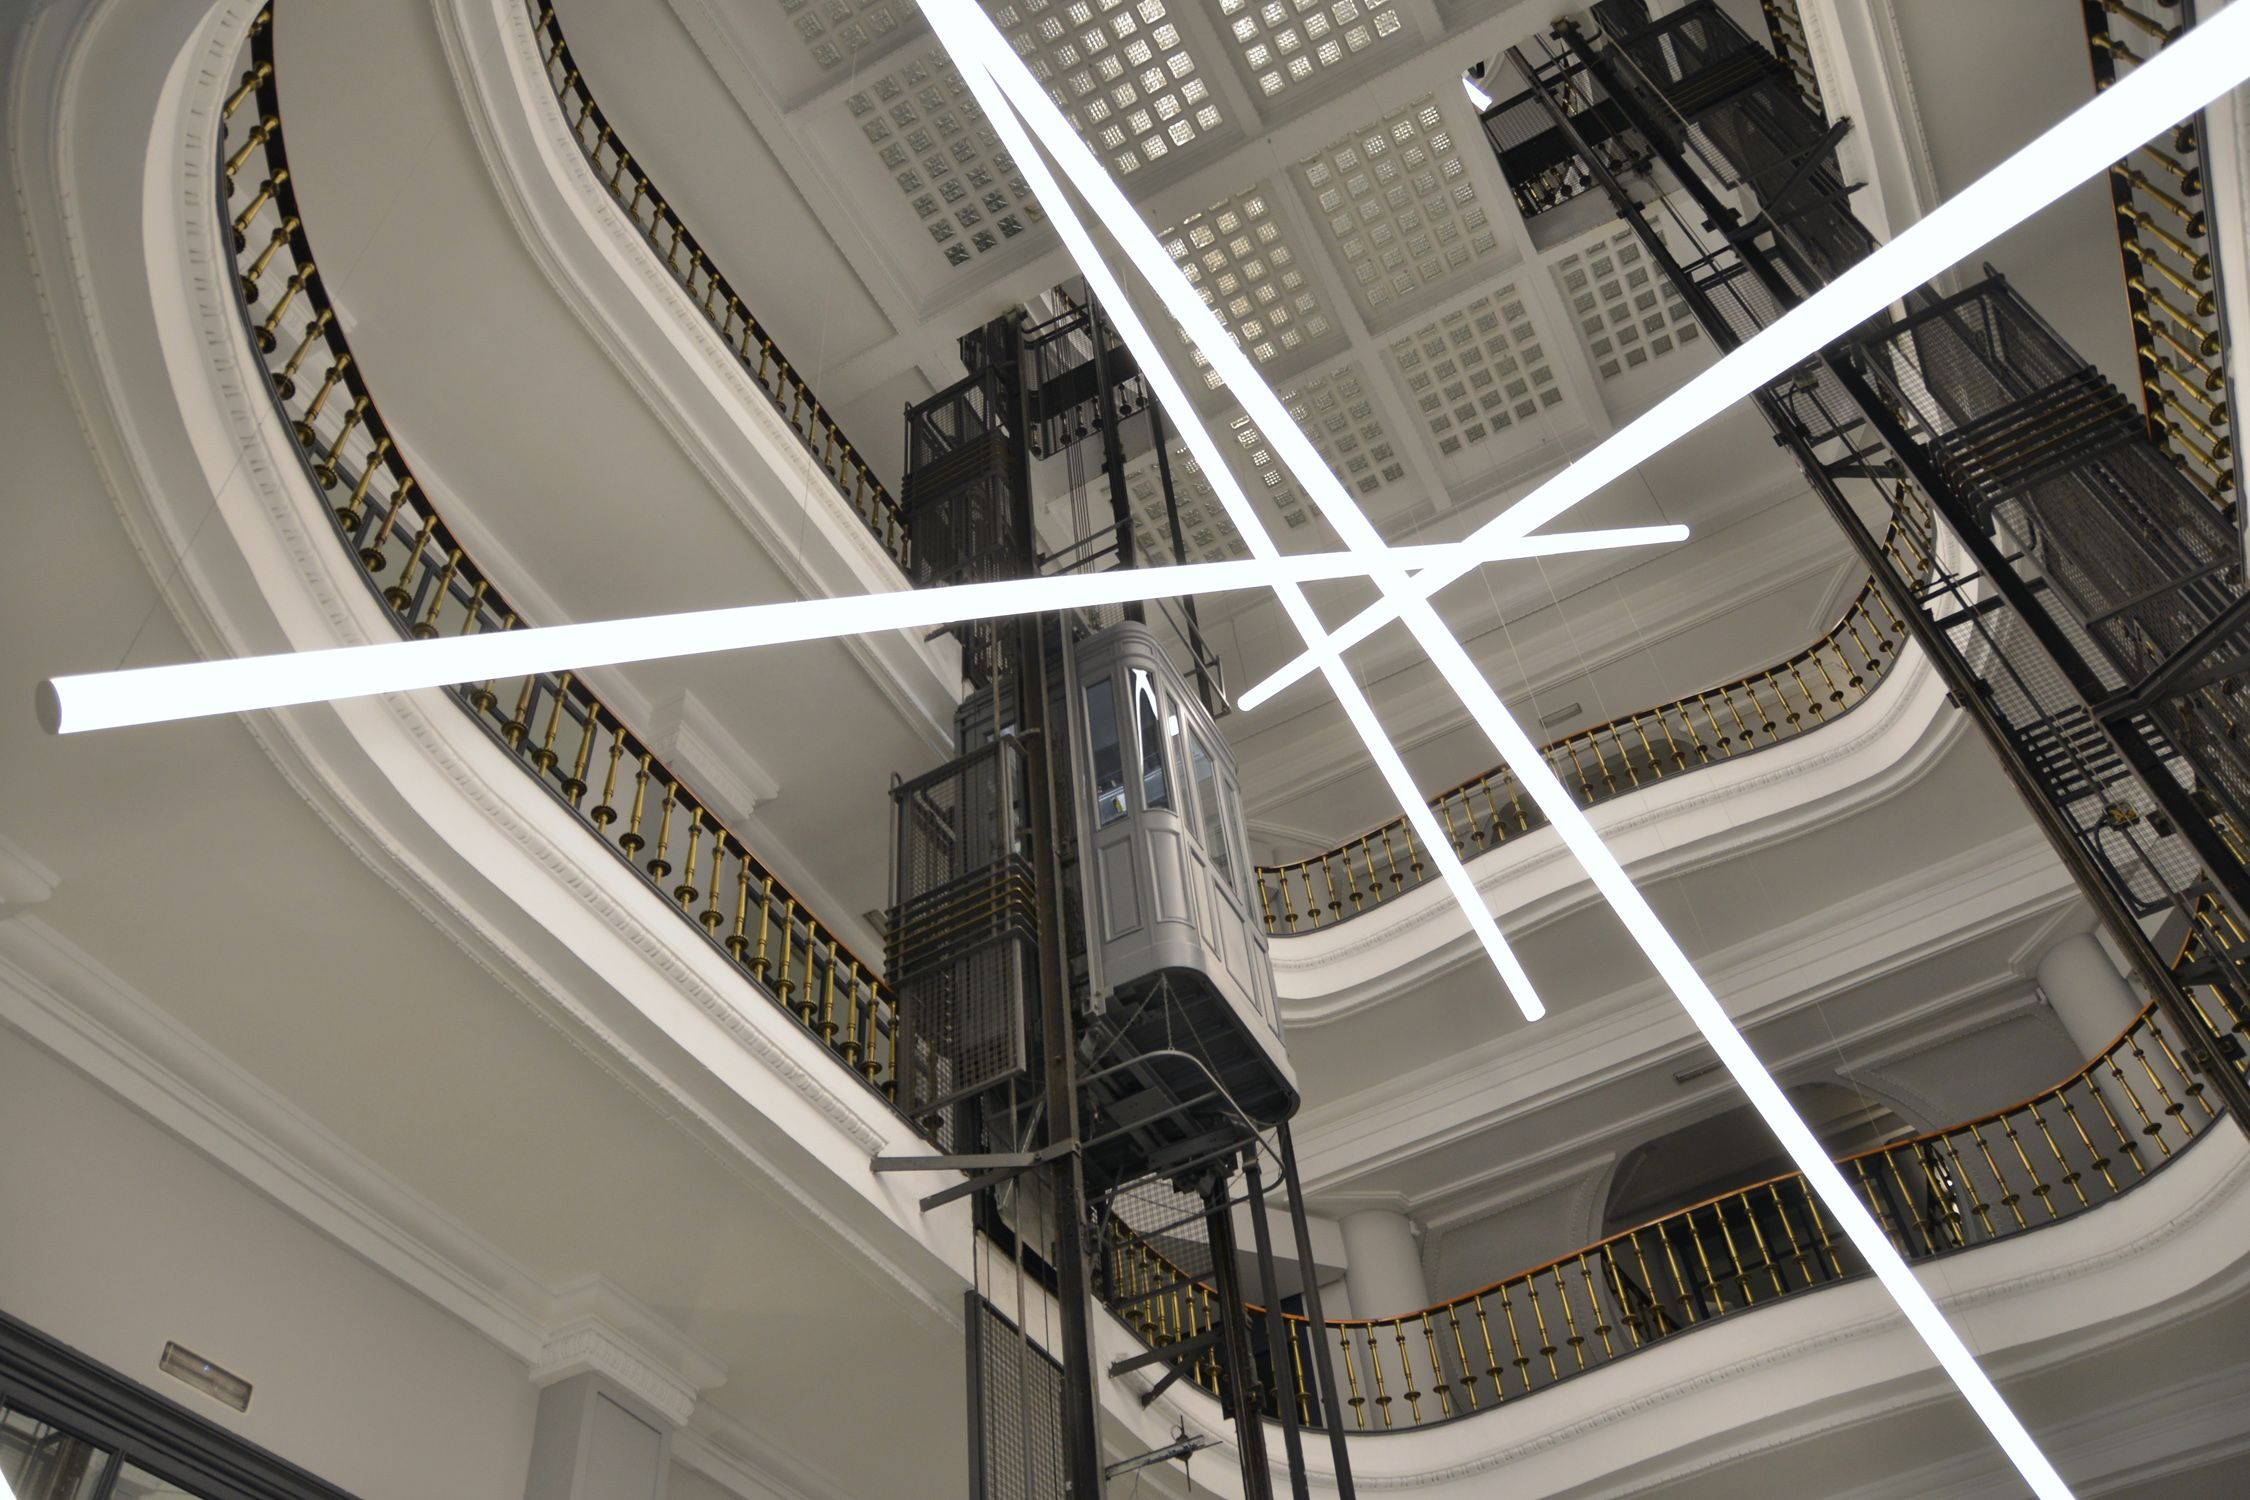 Calle gran v a 27 madrid proyectos lighting y madrid - Catalogo de luminarias para interiores ...